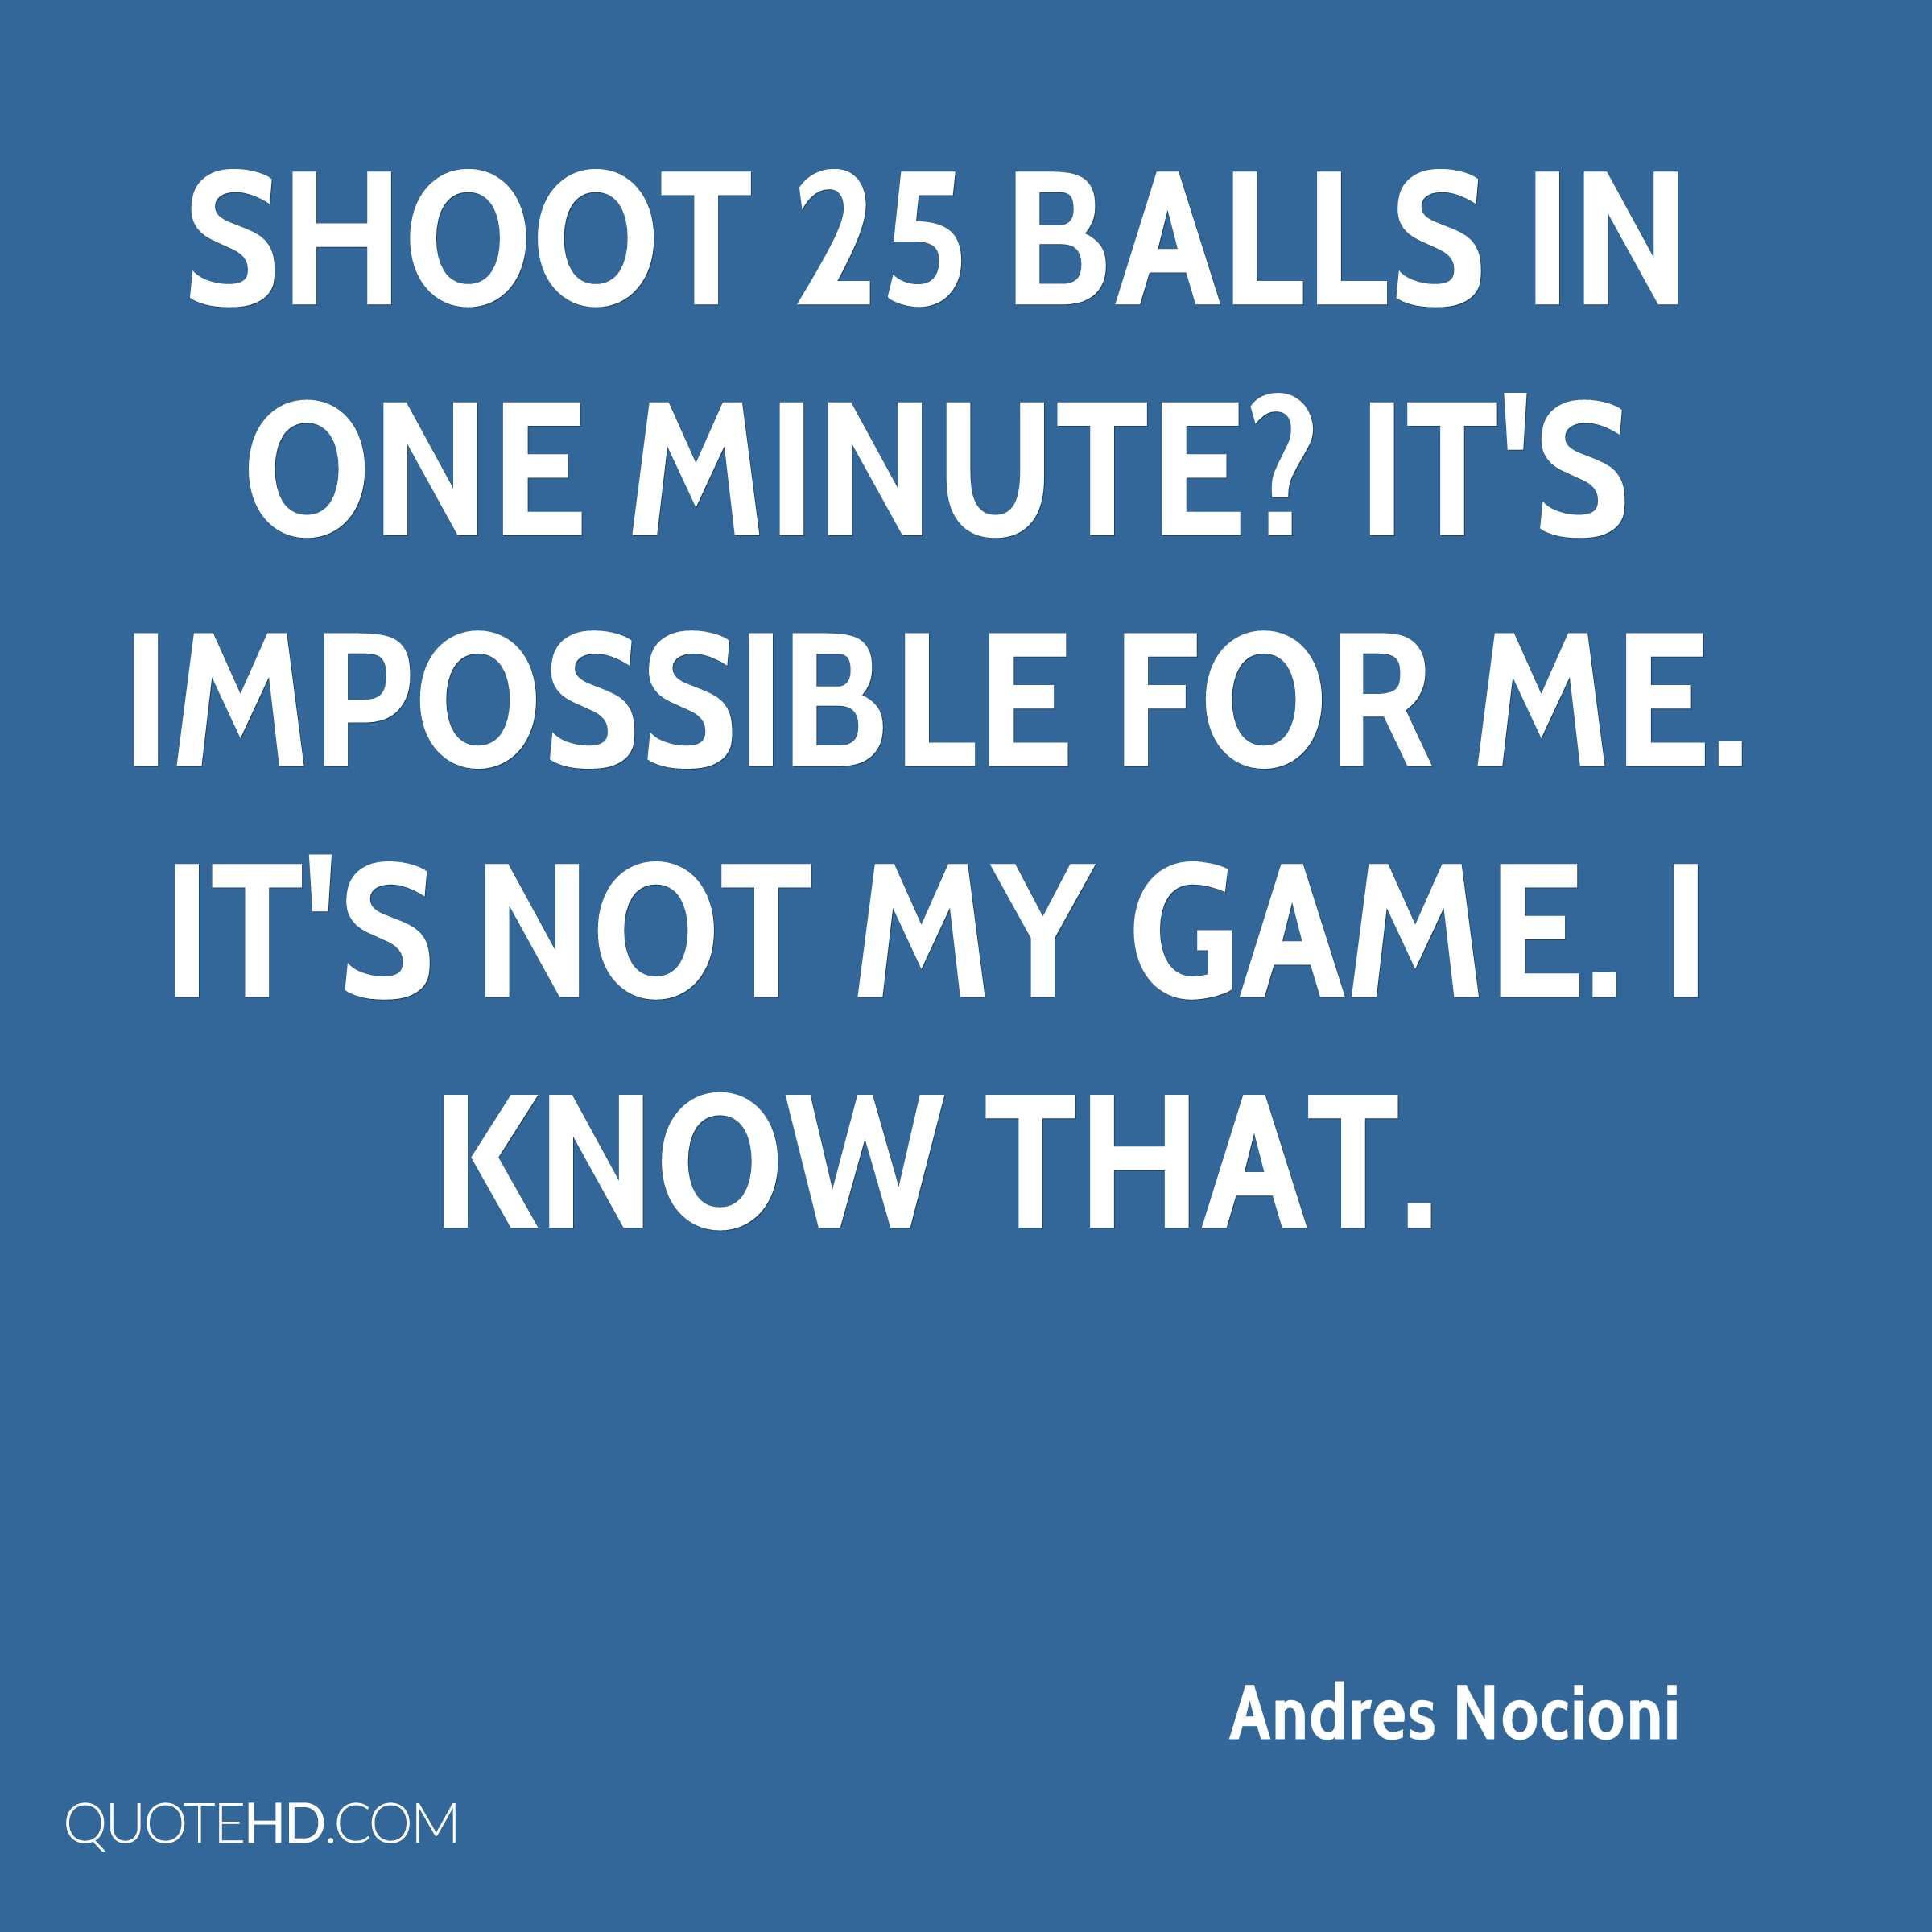 Shoot 25 balls in one minute? It's impossible for me. It's not my game. I know that.